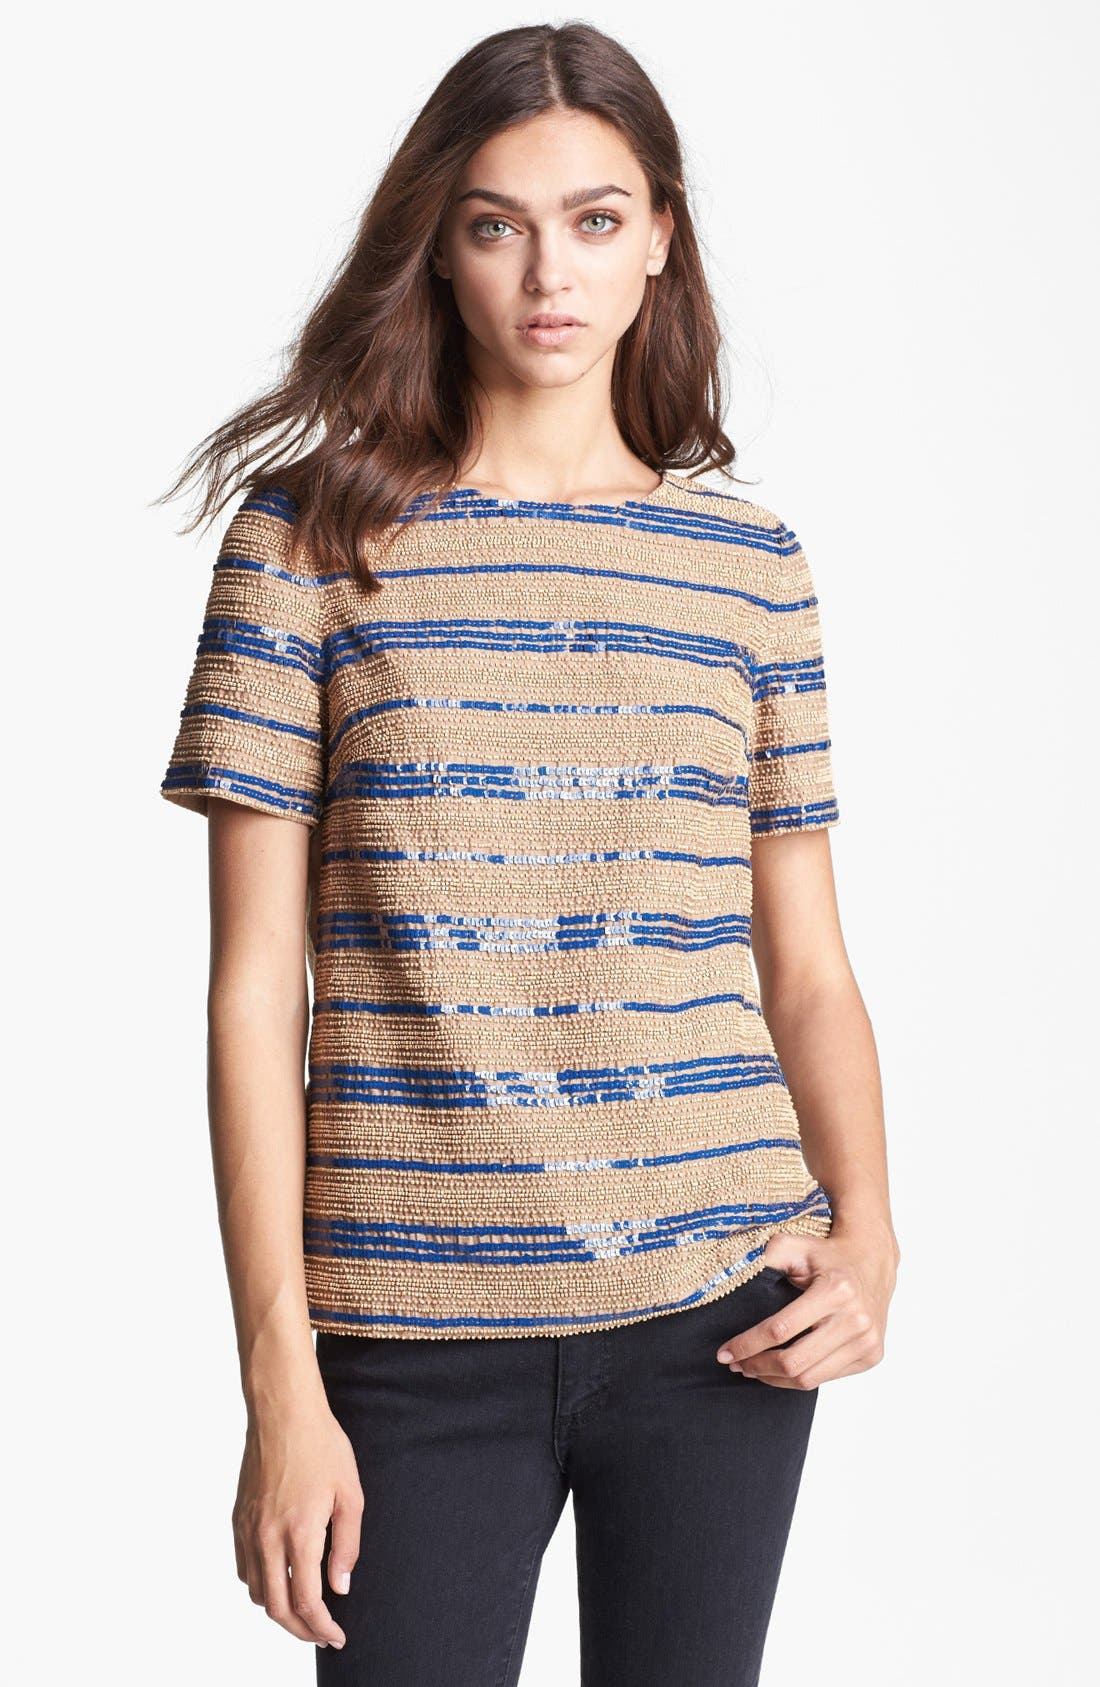 Main Image - Tory Burch 'Theresa' Embellished Top